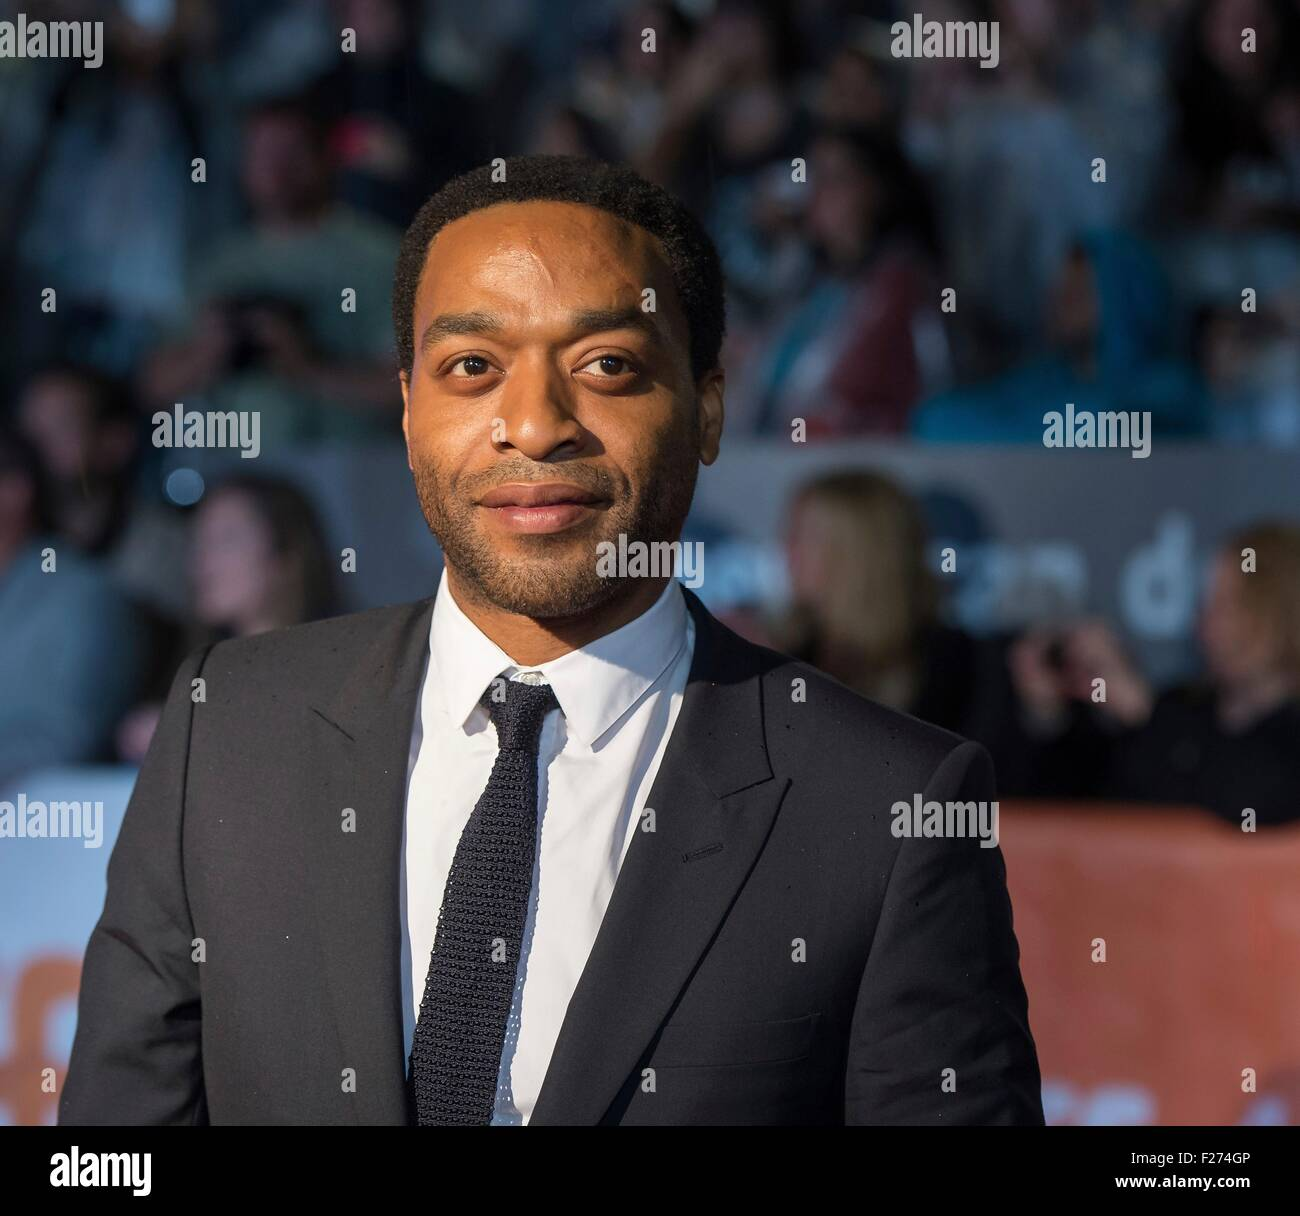 Actor Chiwetel Ejiofor attends the world premiere for The Martian at the Toronto International Film Festival at - Stock Image